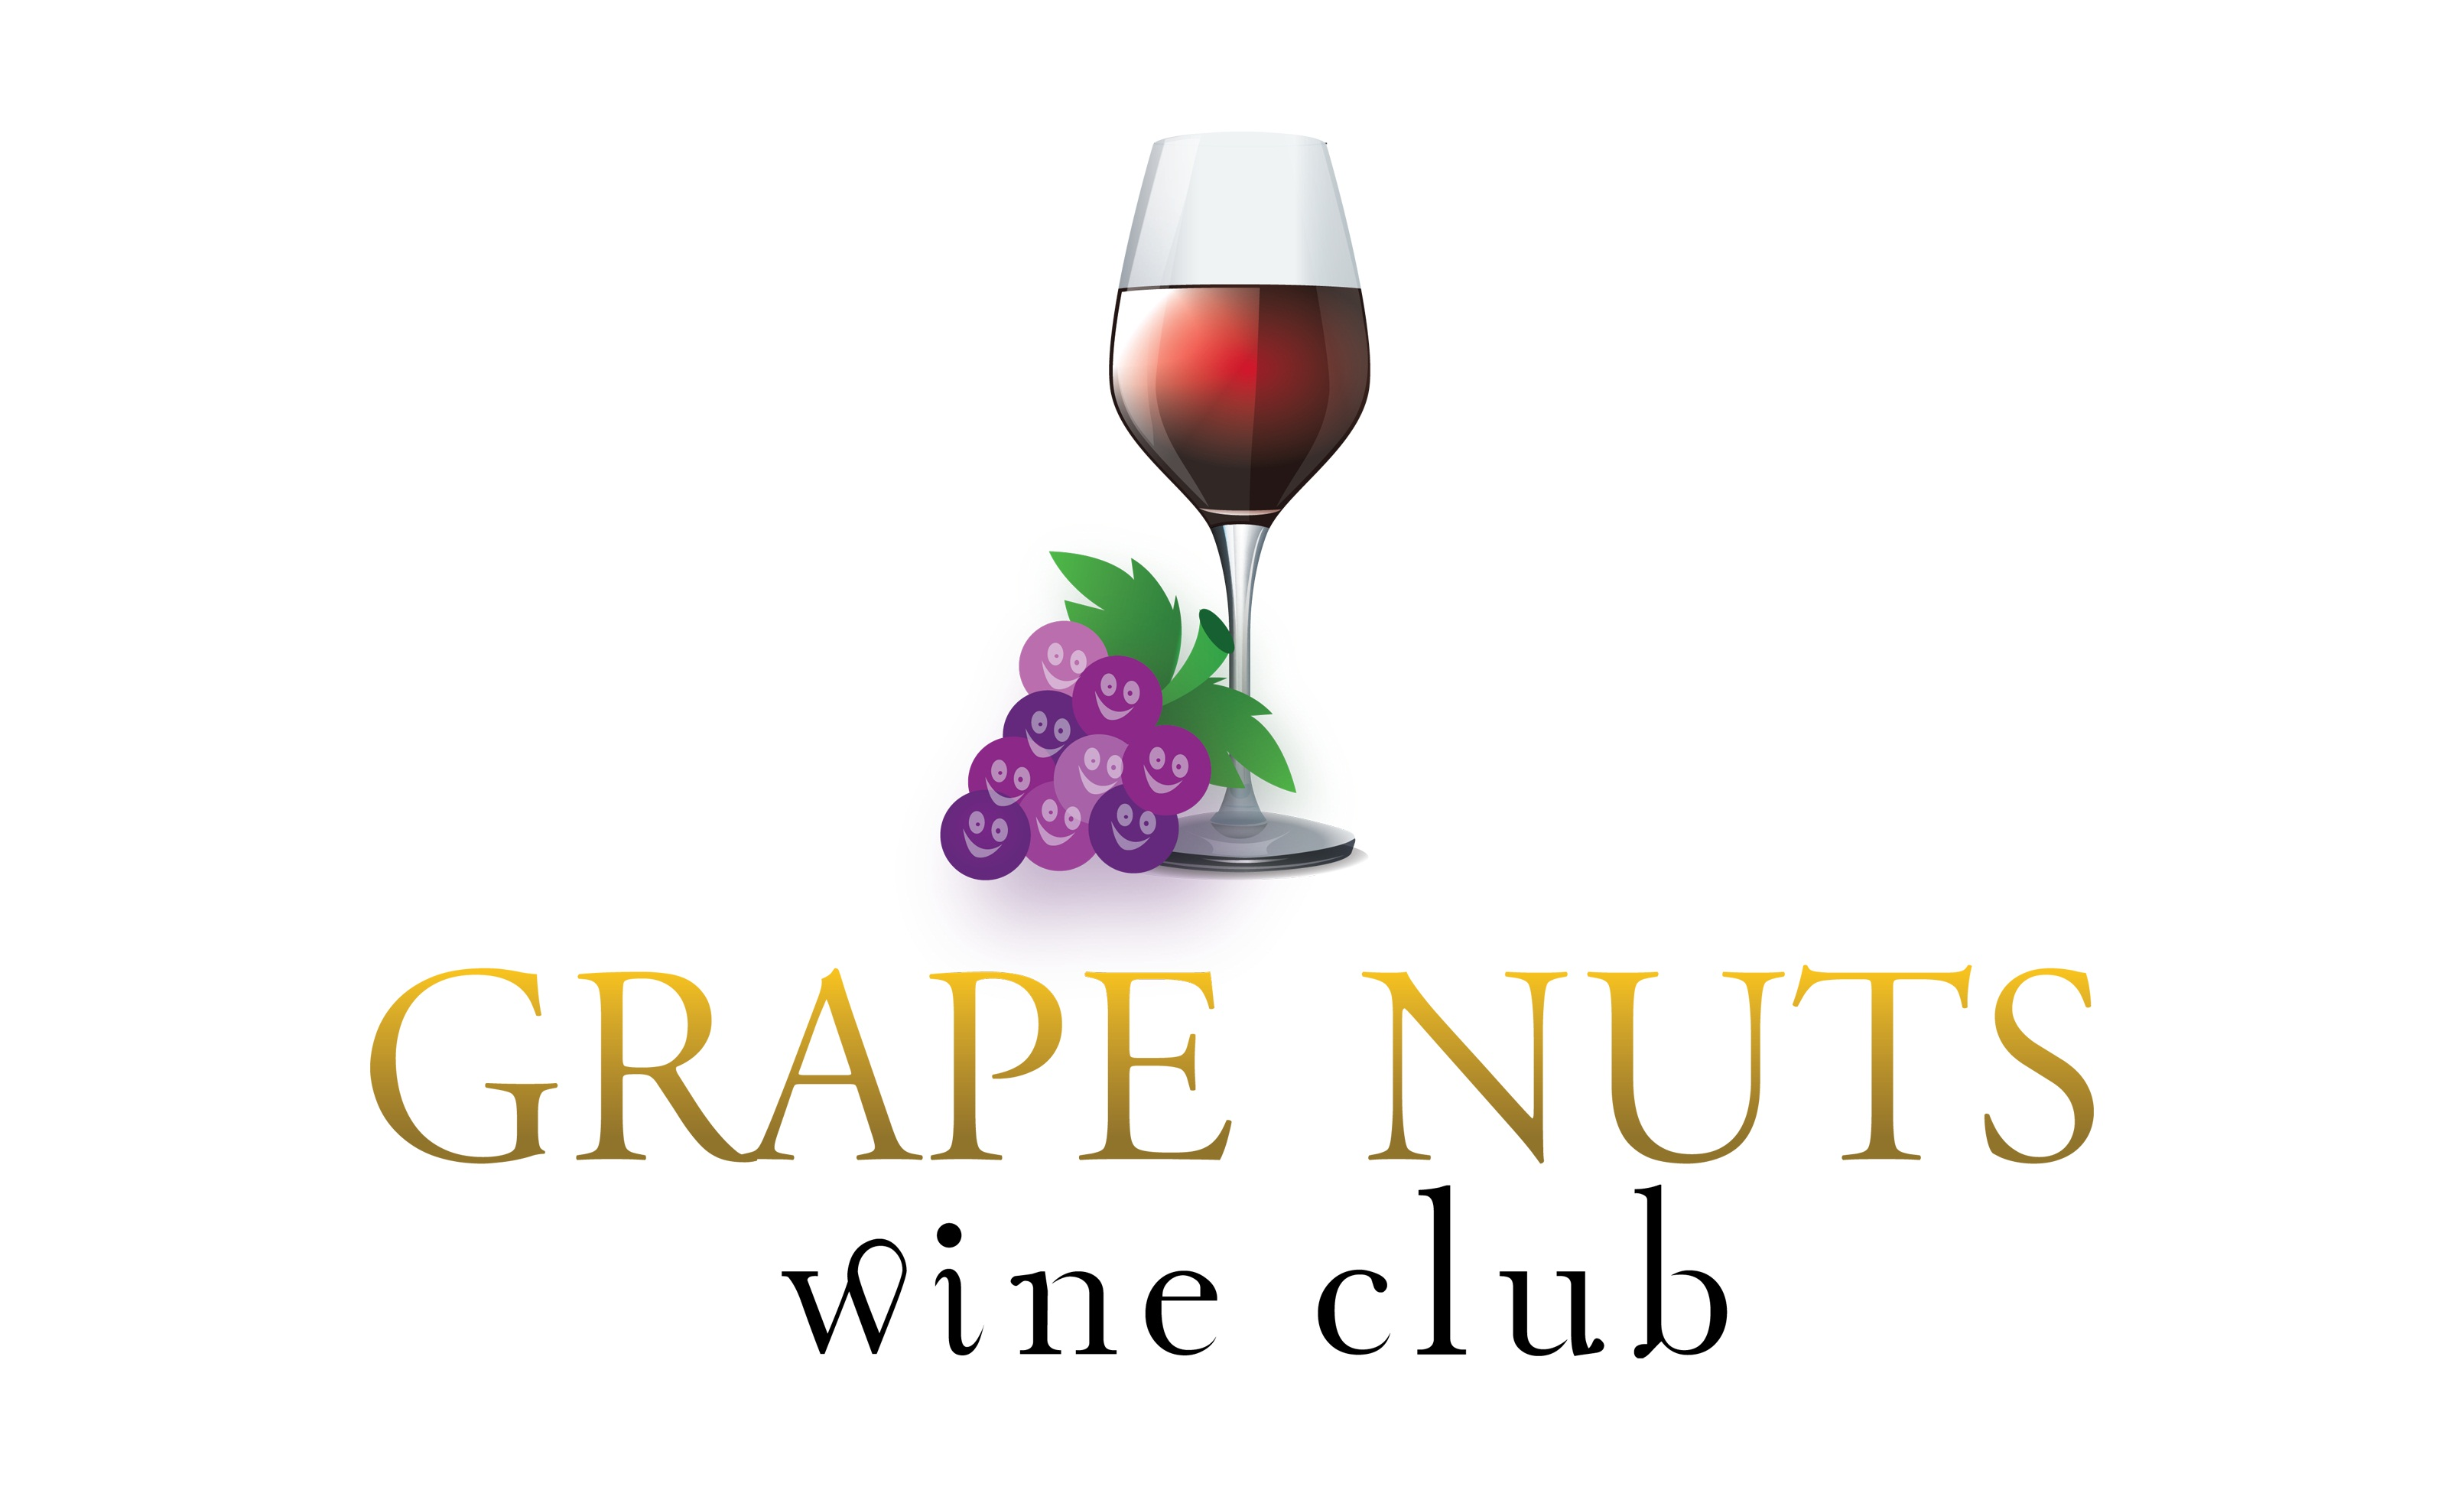 Logo Design by mediaproductionart - Entry No. 57 in the Logo Design Contest Artistic Logo Design for Grape Nuts Wine Club.